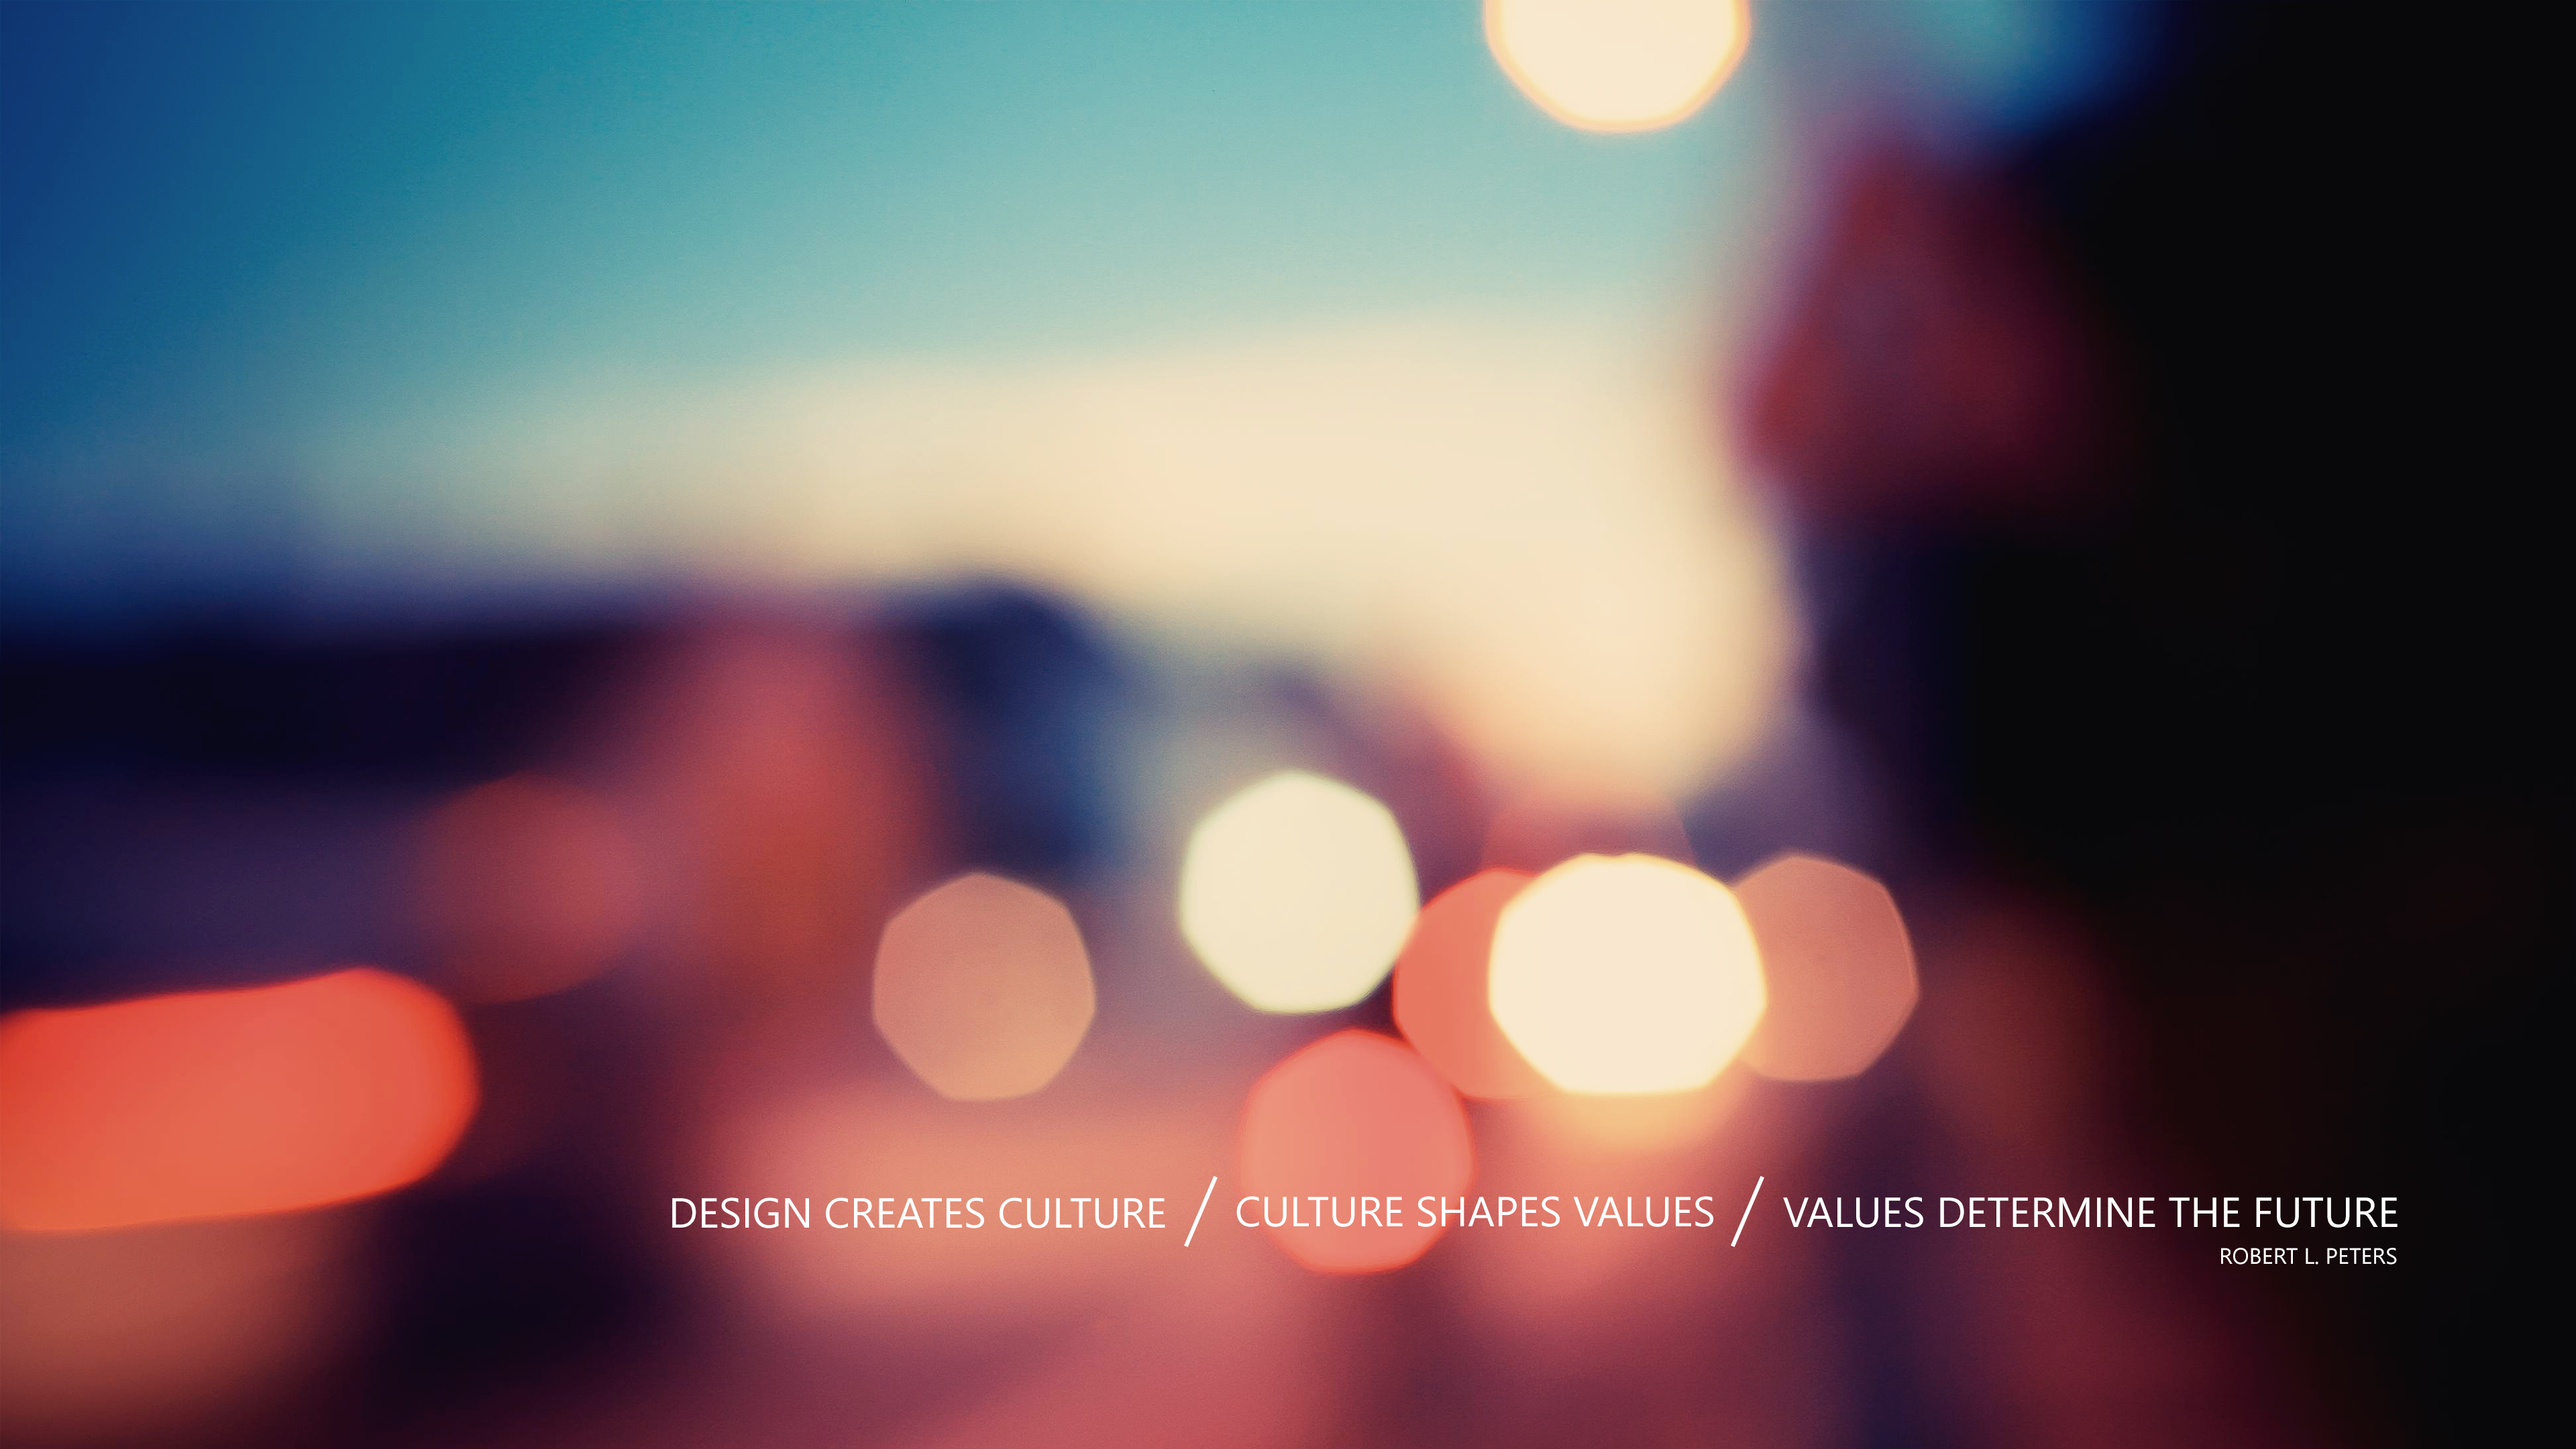 Design Creates Culture. Culture Shapes Values. Values Determine The Future. Robert Peters